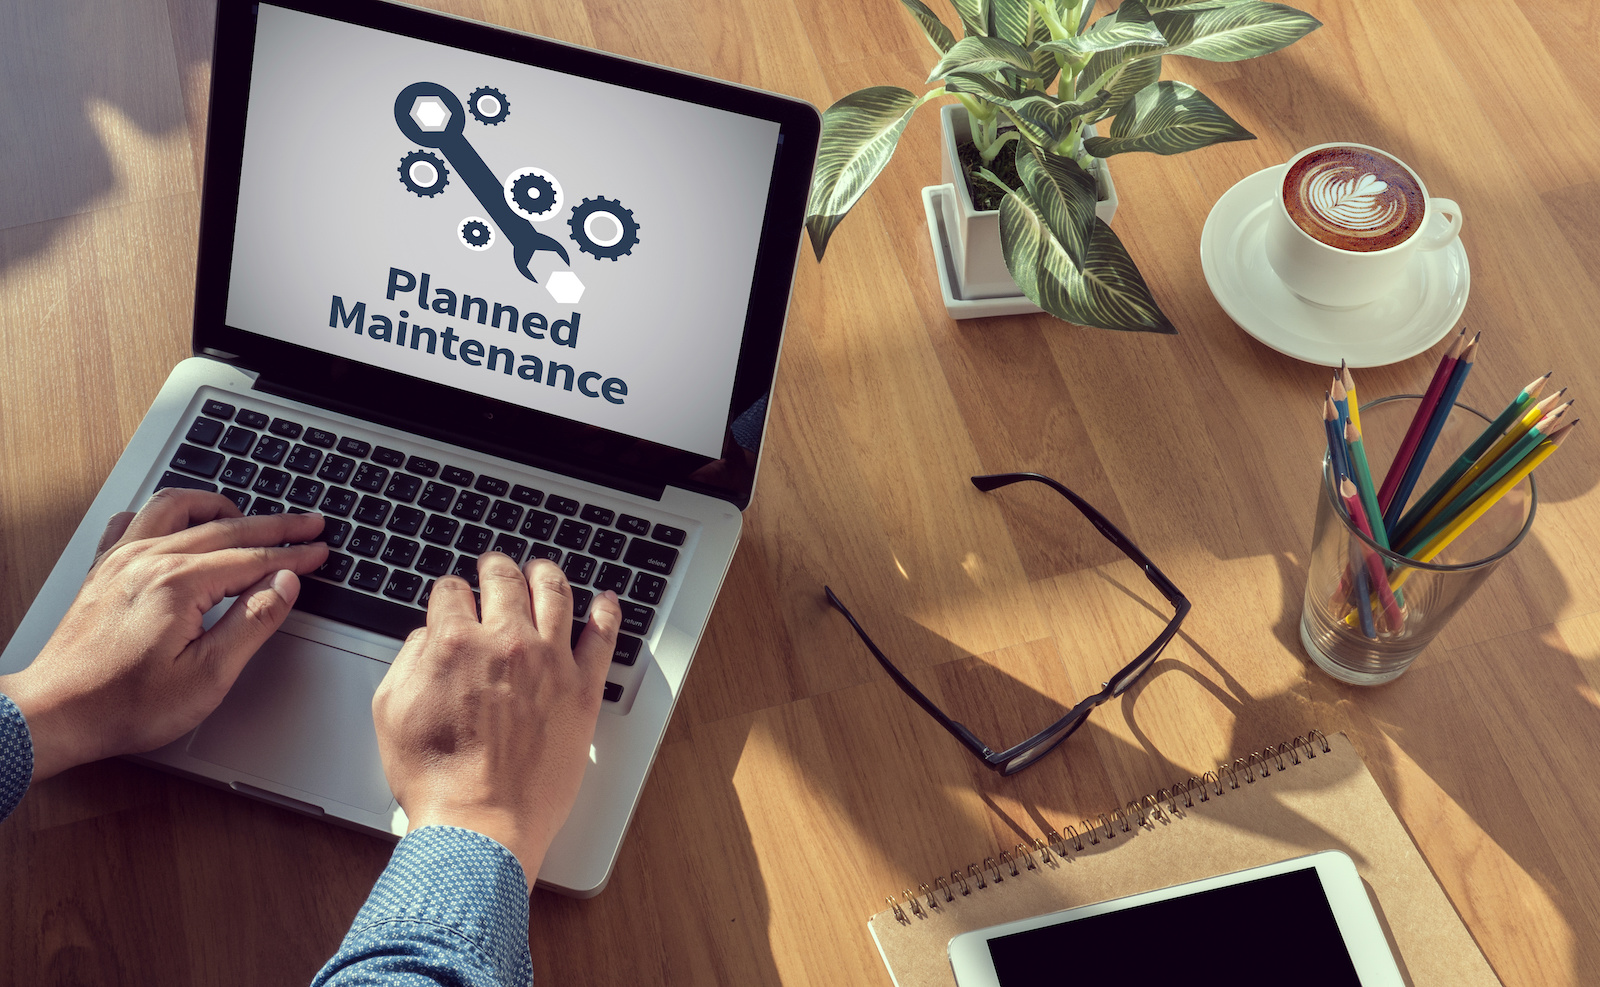 website maintenance service What Is Website Maintenance and Why Is It so Important?